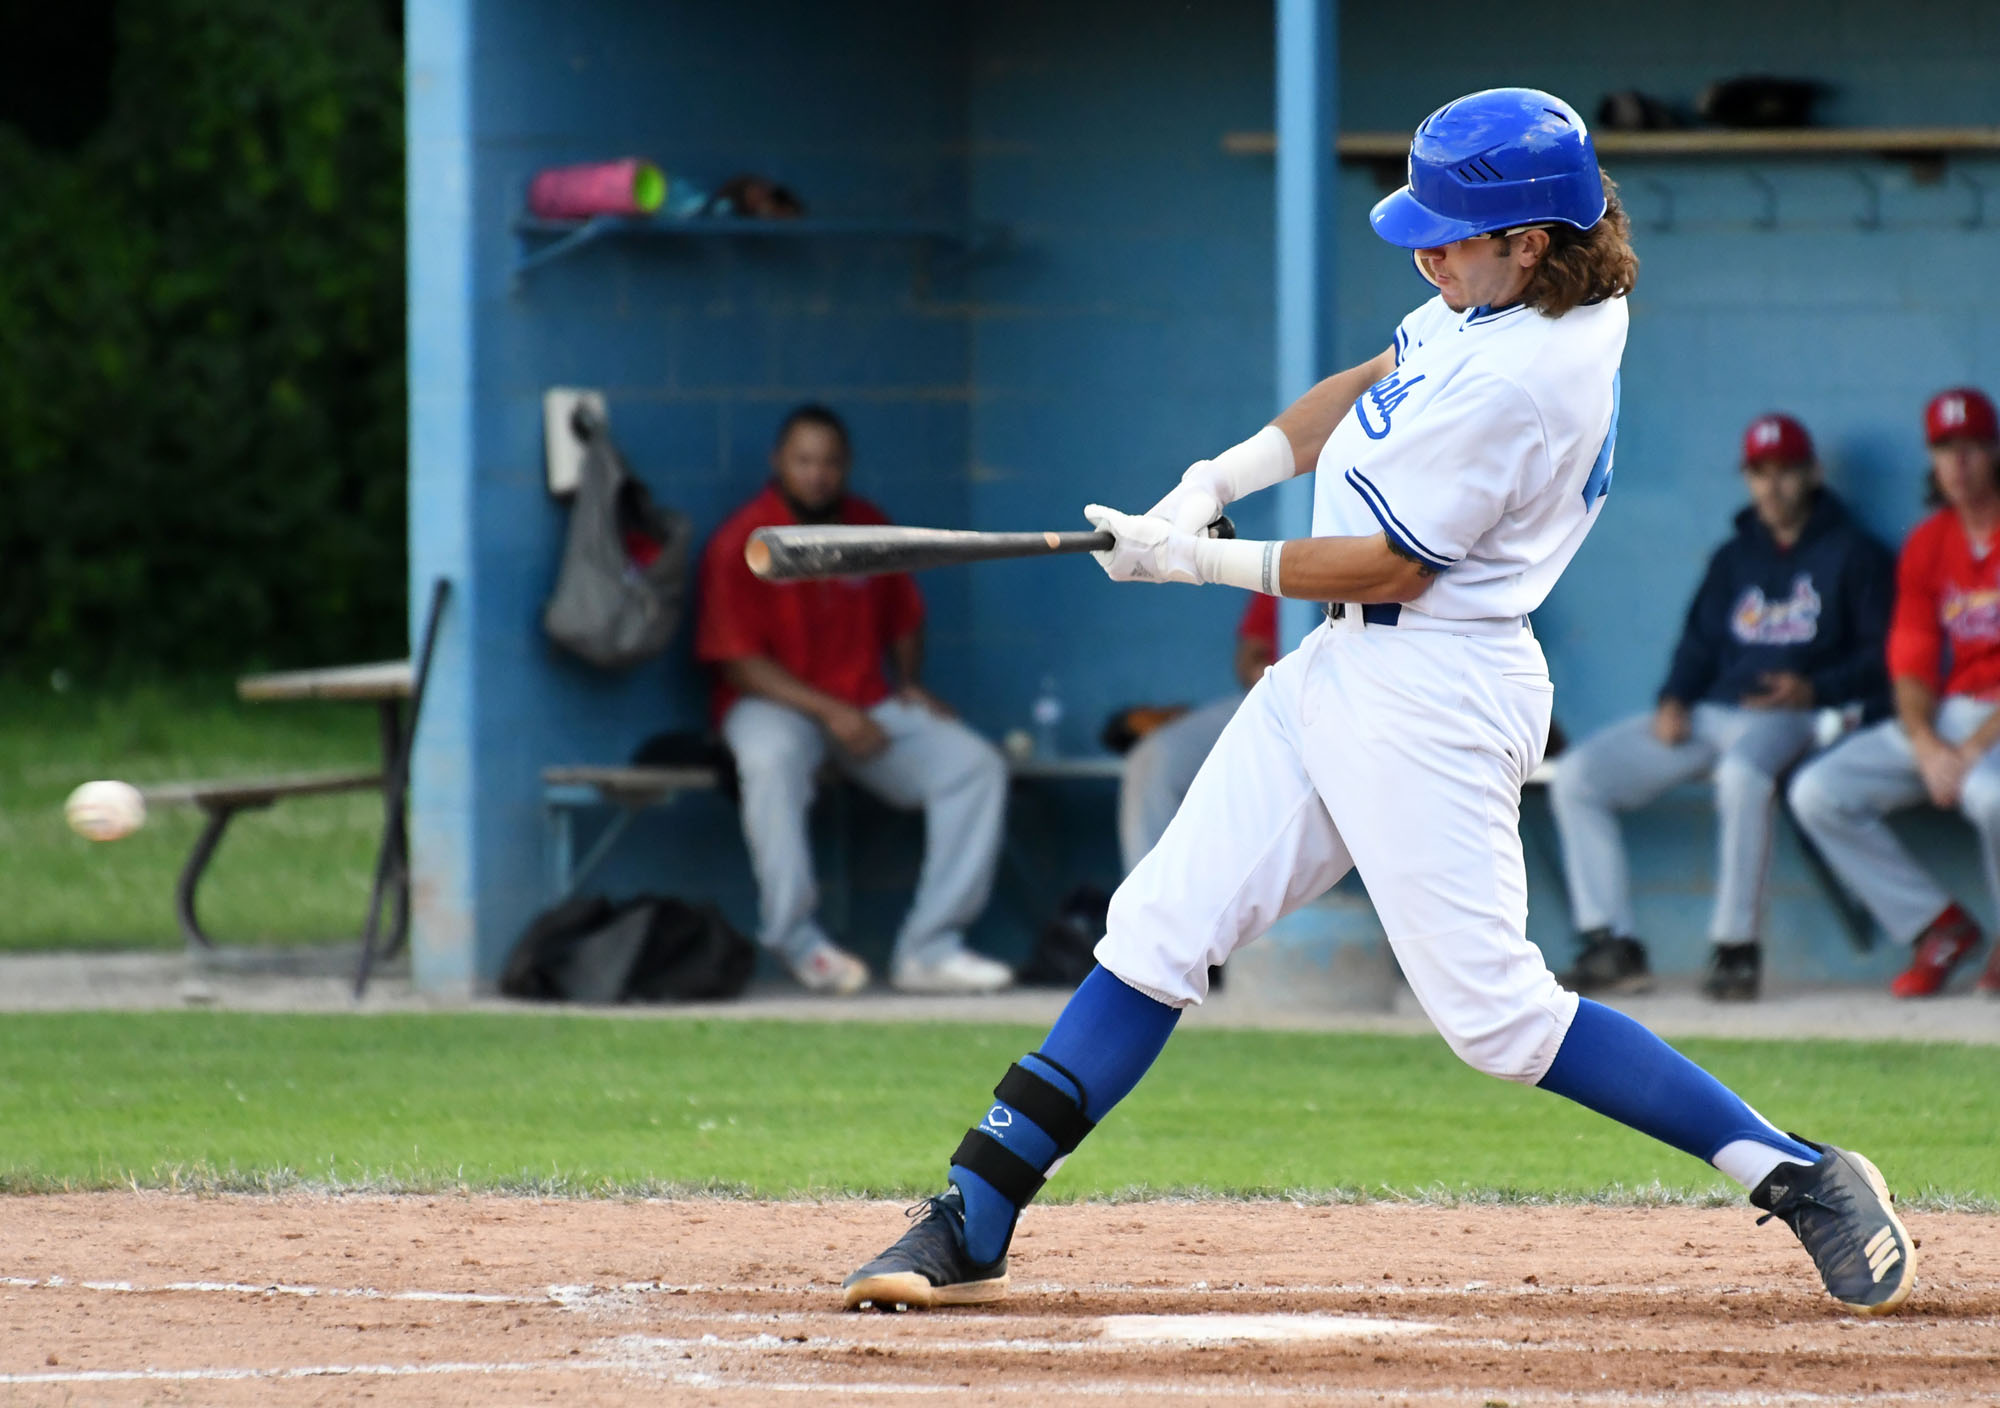 Photos: Guelph Royals-Hamilton IBL baseball